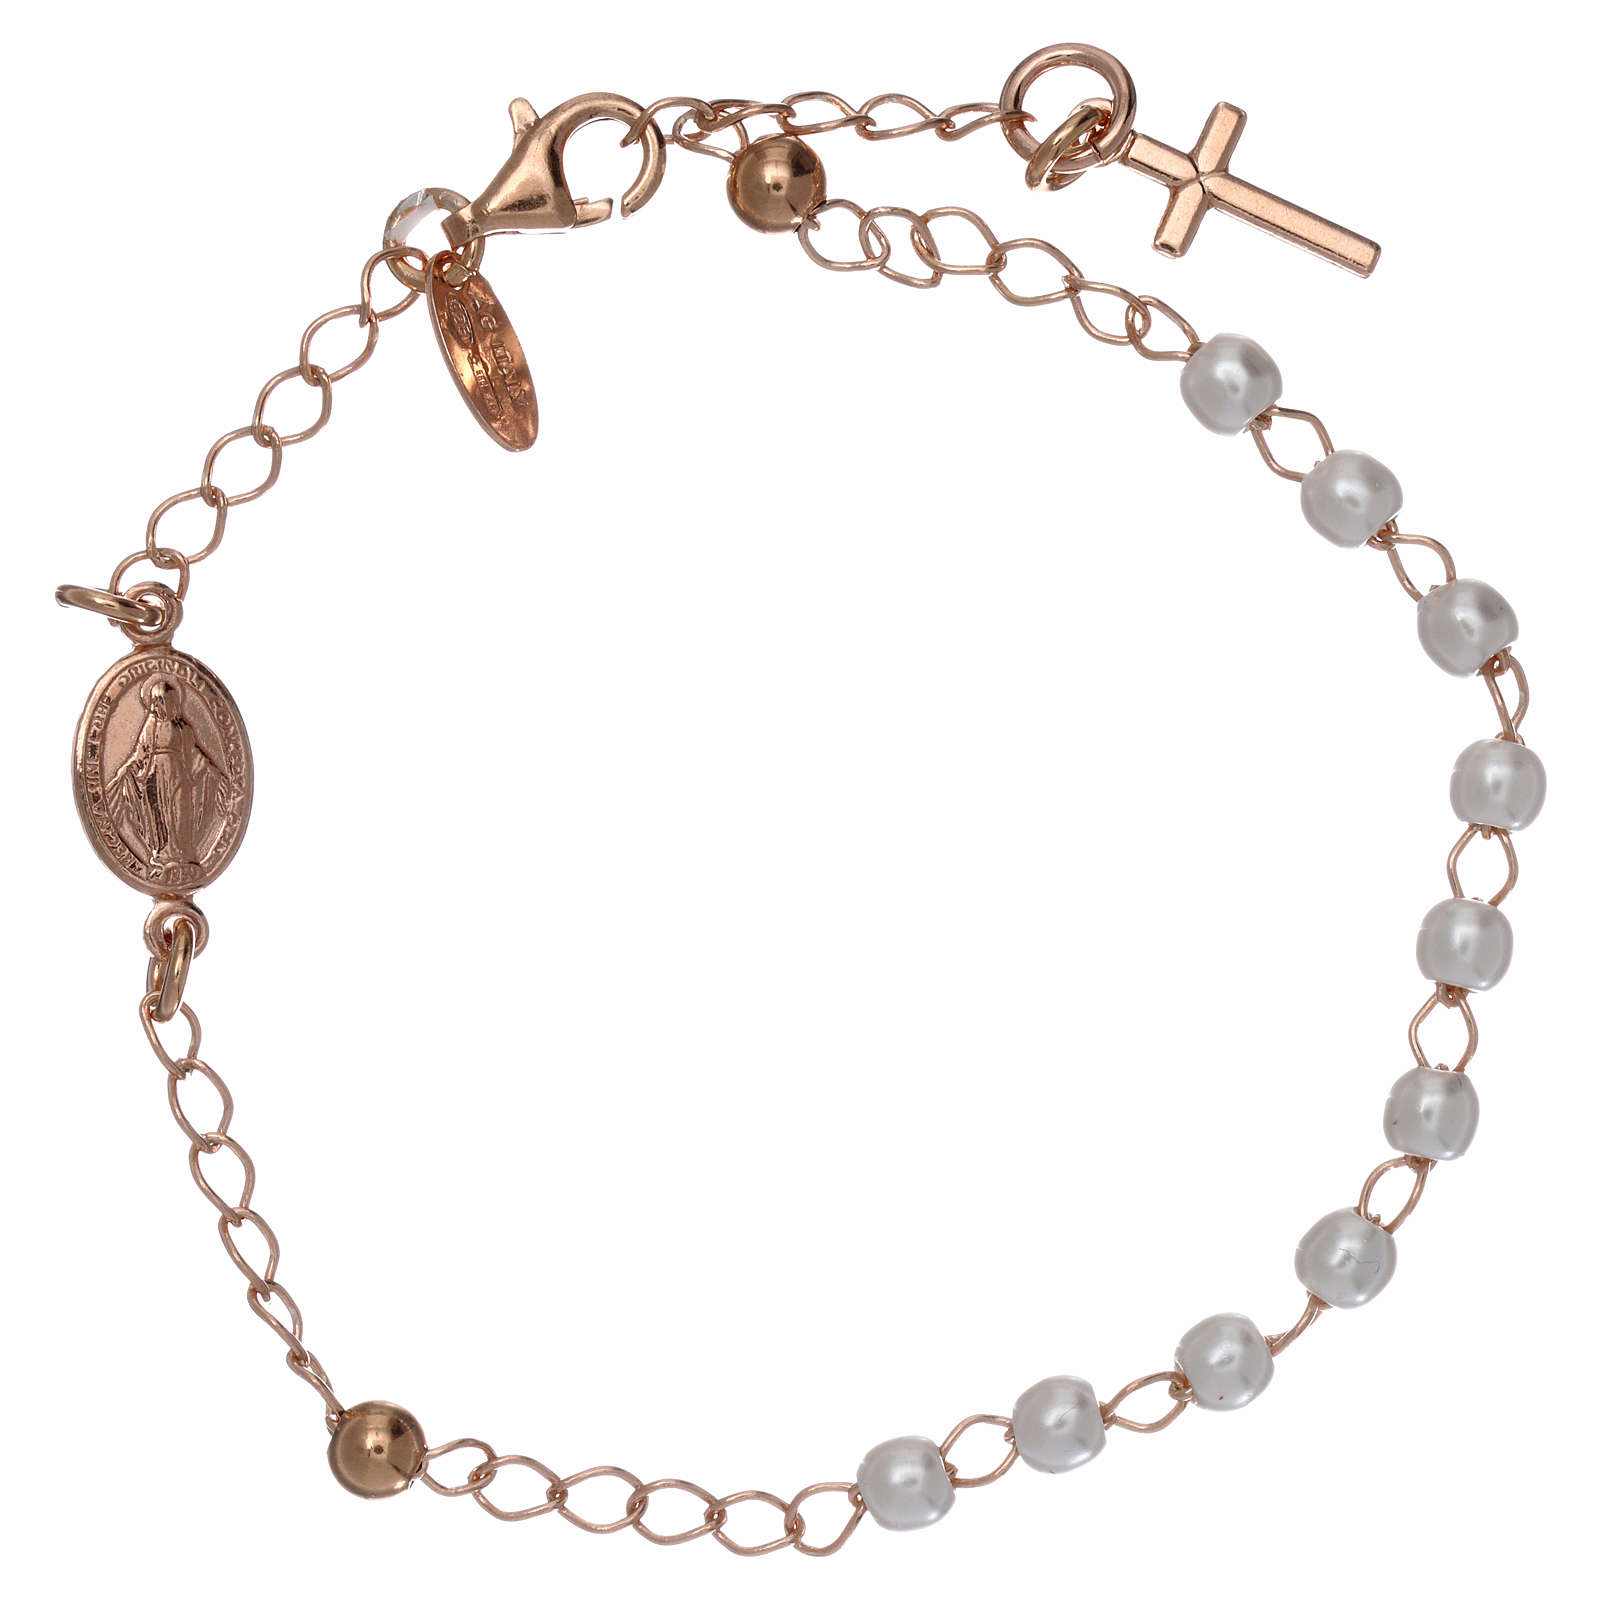 Rosary AMEN Bracelet Charm Cross pearls silver 925, Rosè finish 4